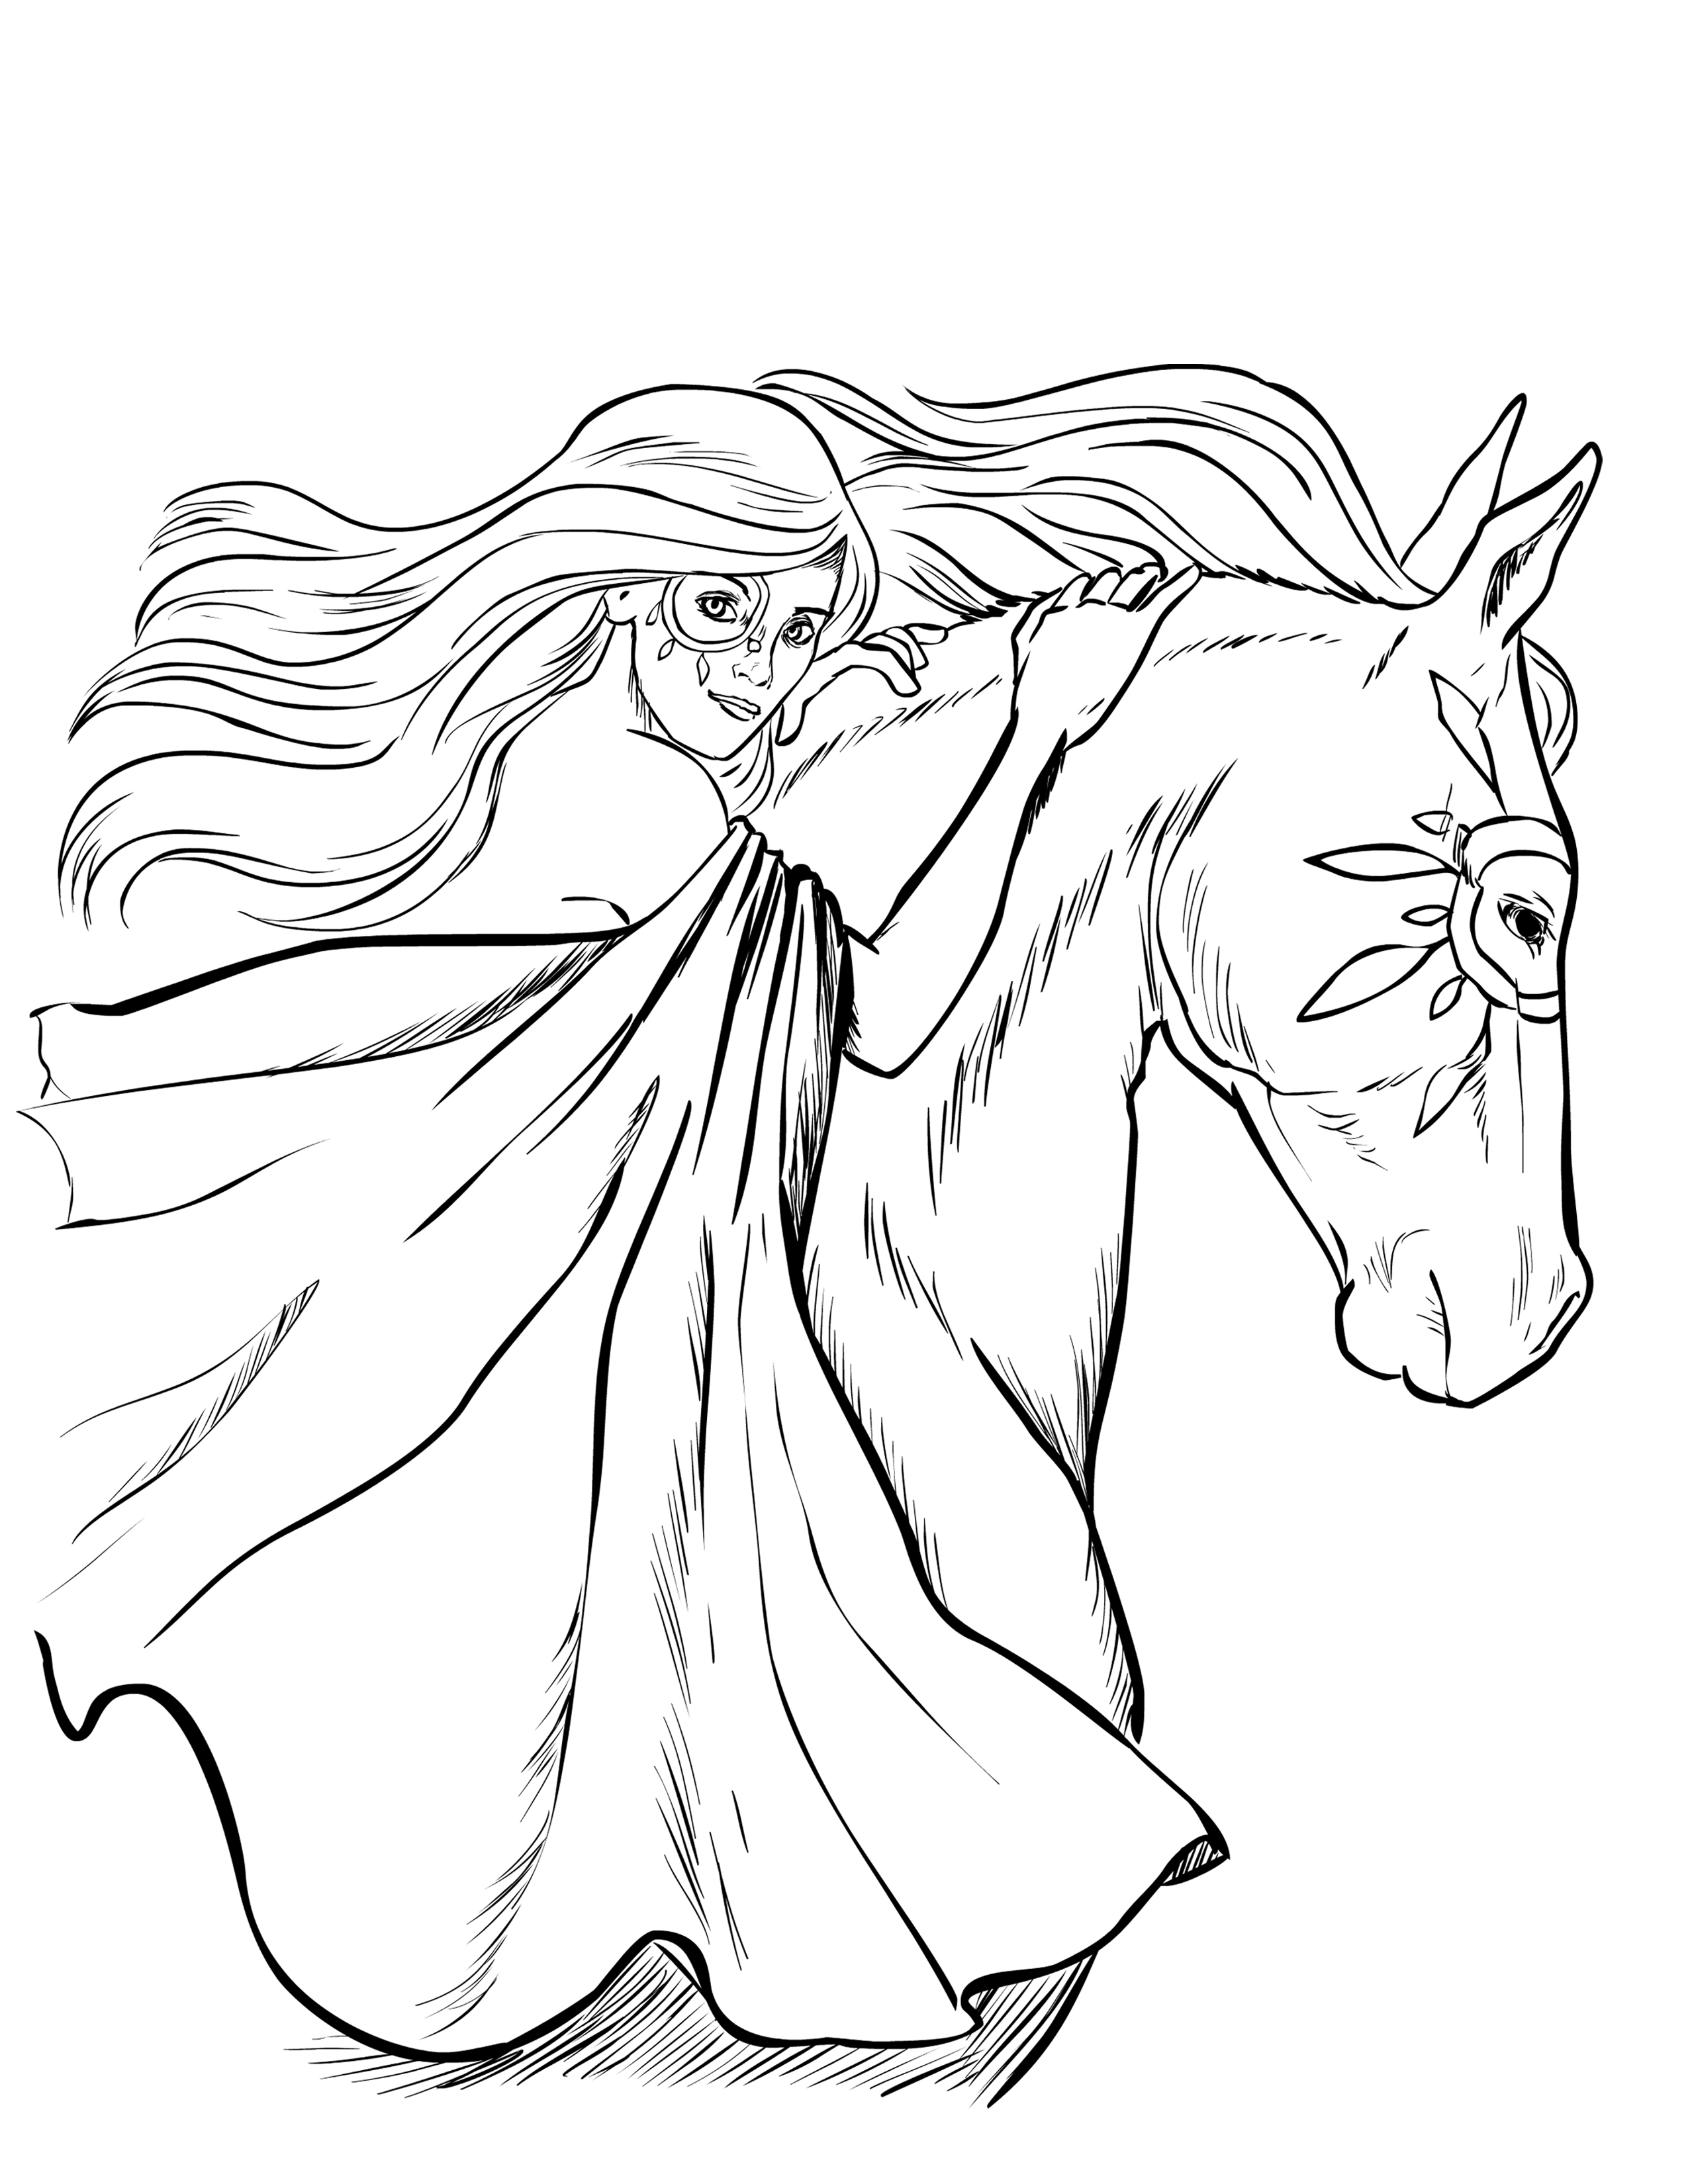 Free Horse Coloring Pages Free Horse Coloring Pages Selah Works Adult Coloring Books